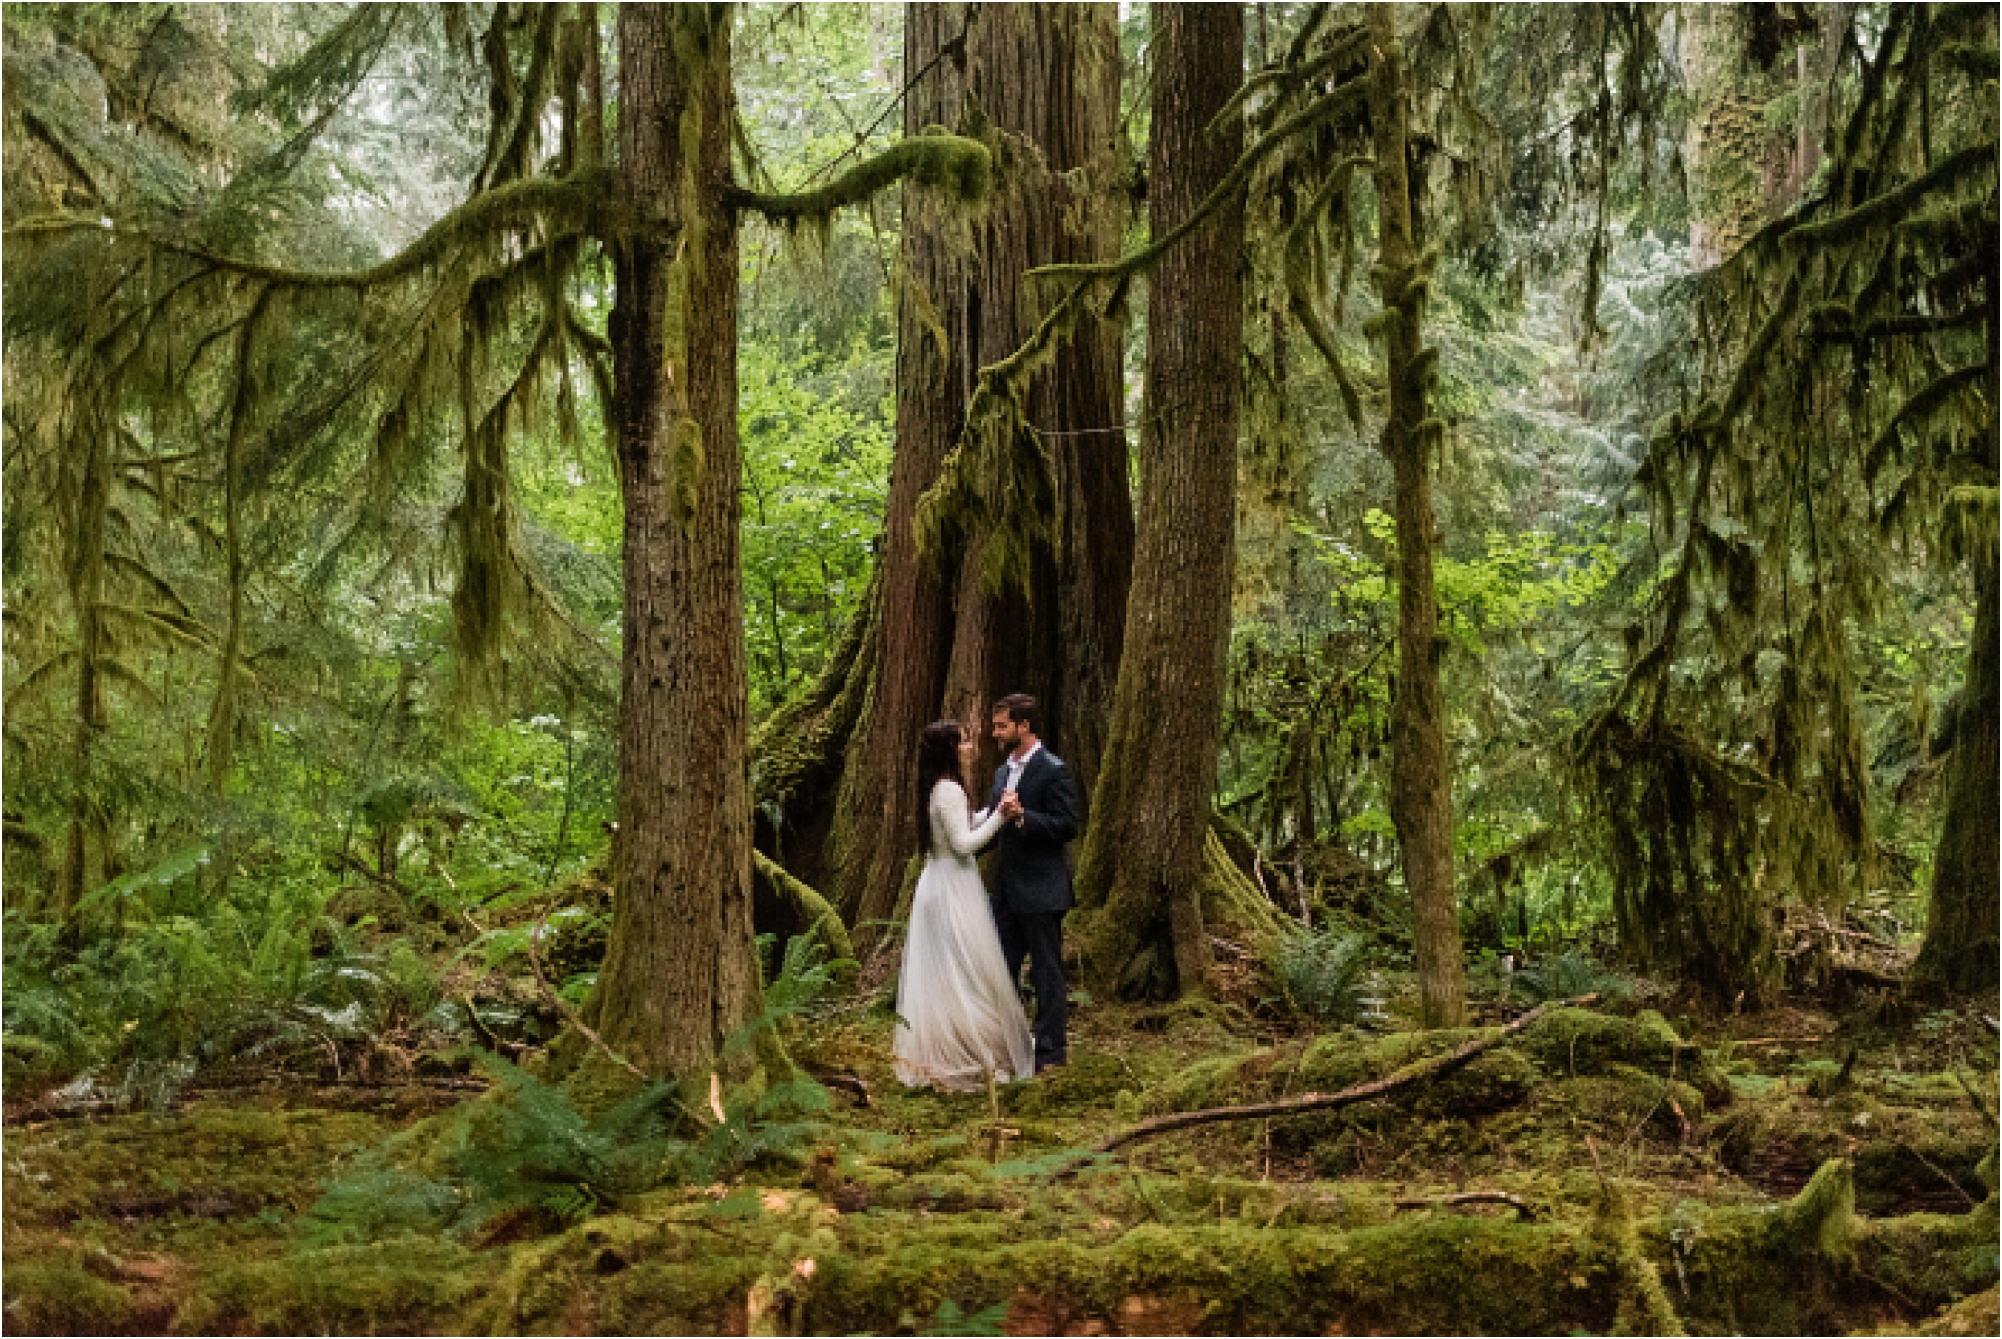 Elopement first dance in the forests of Mt. Baker. Image by Forthright Photo.